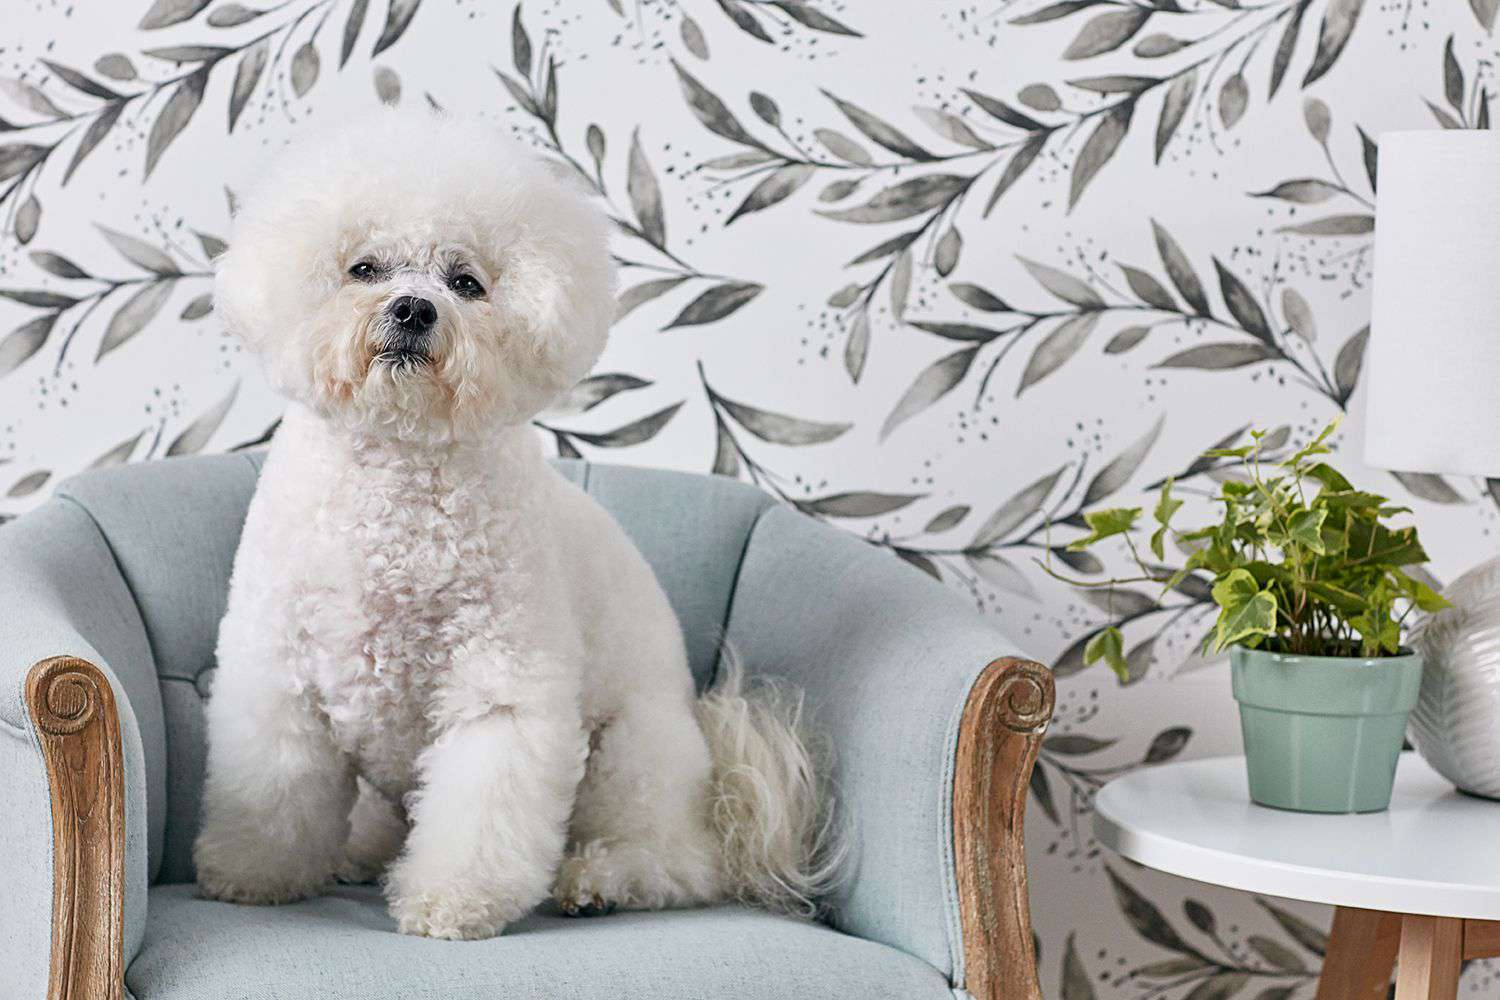 Bichon Frise dog sitting on blue-gray wooden vintage chair next to side table